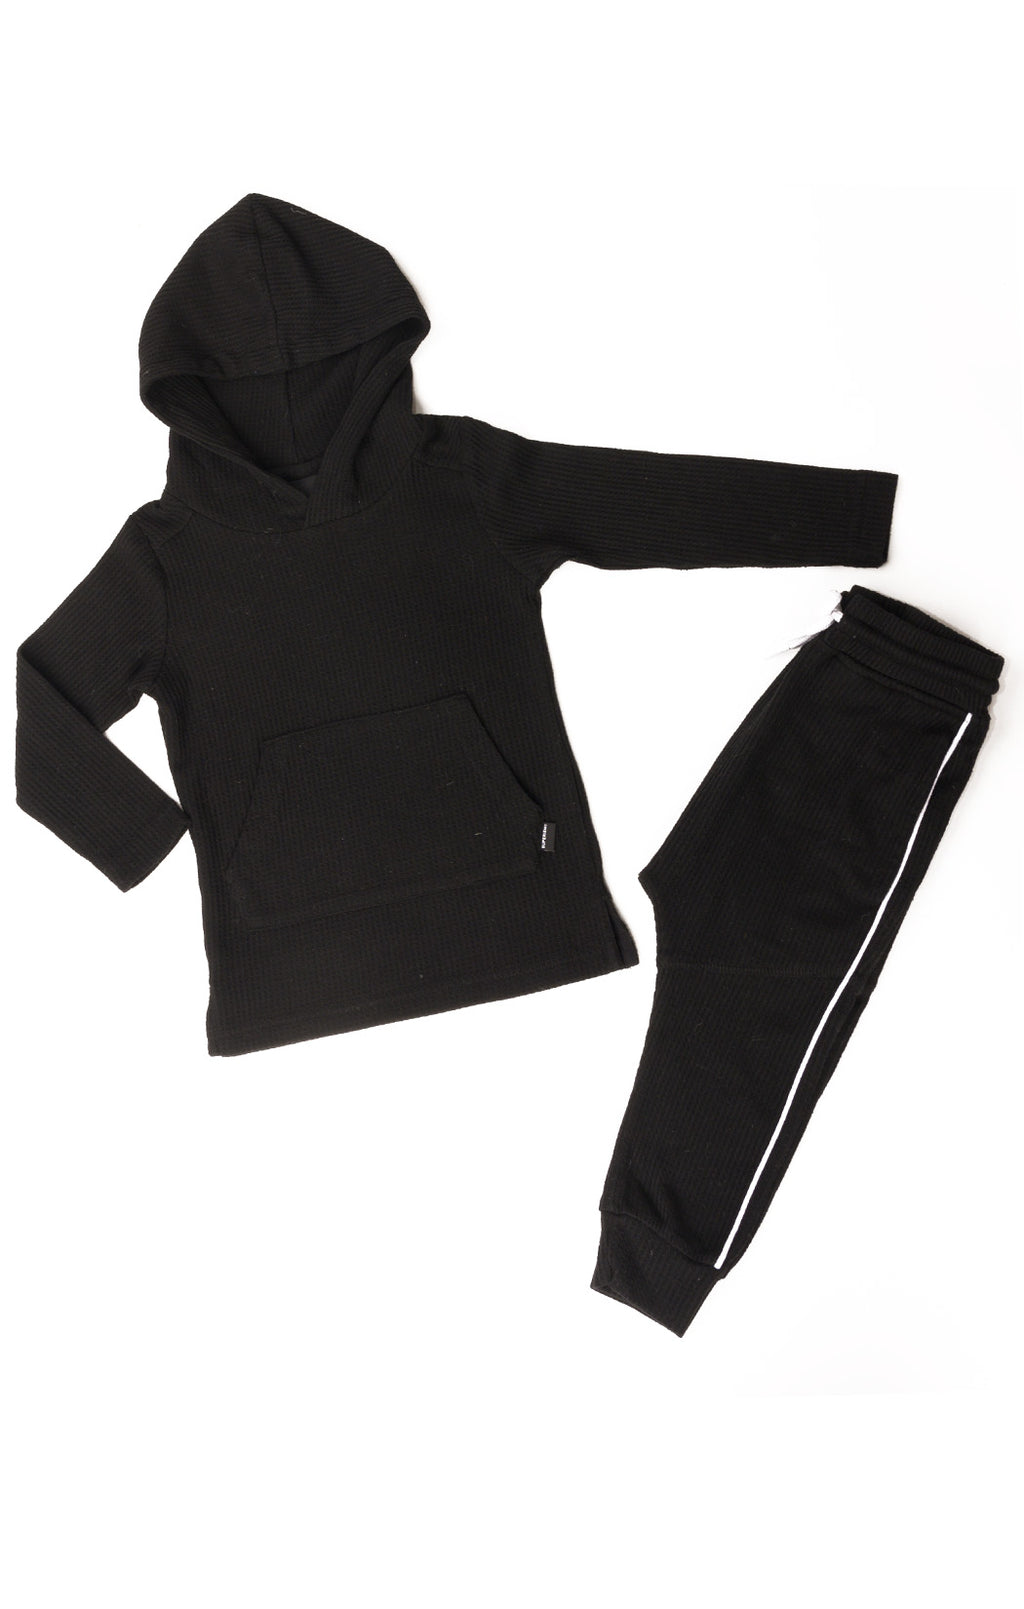 Front view of SUPERISM Hoody and pant Size: Hoody is size 2, pant is size 4